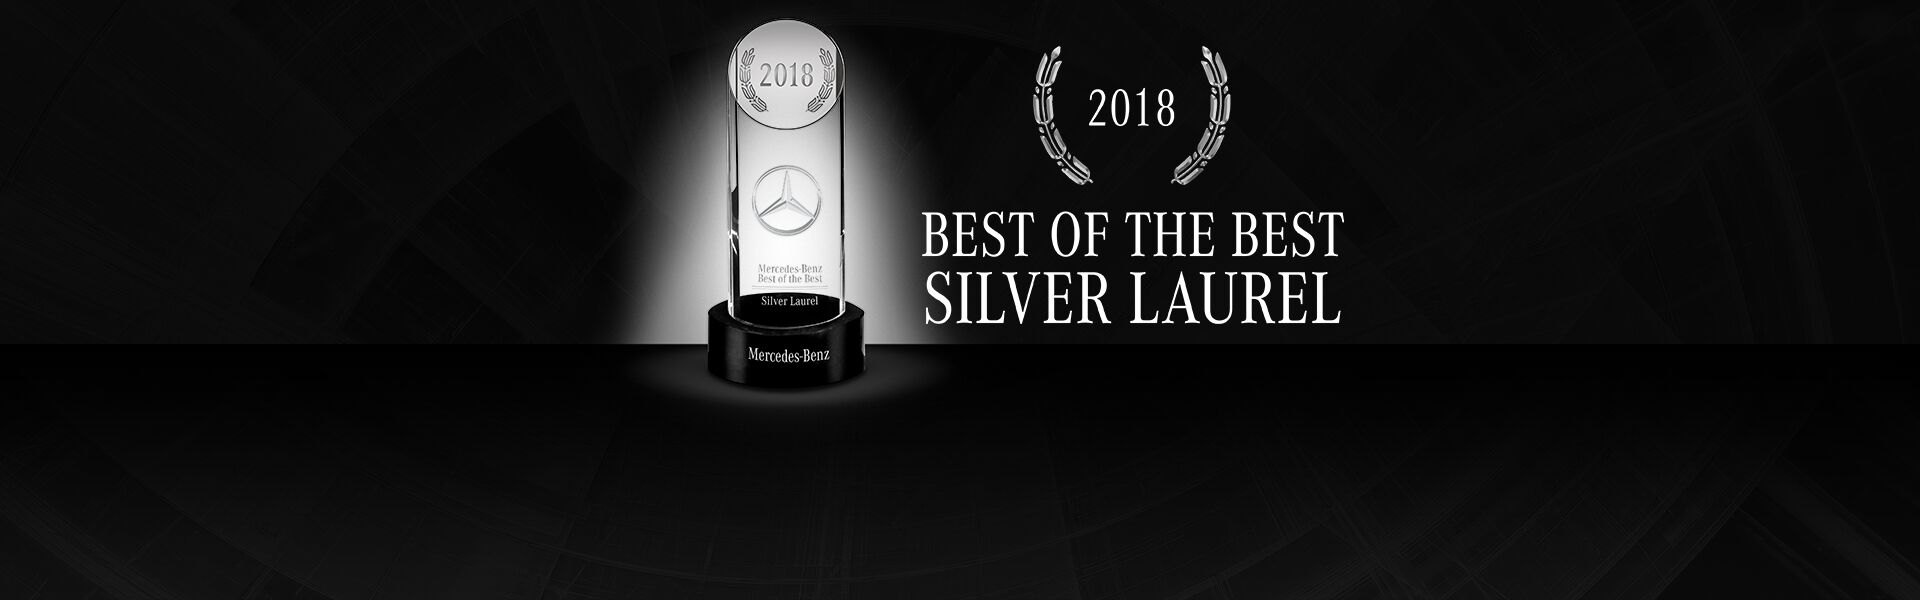 Best of the Vest Silver Laurel